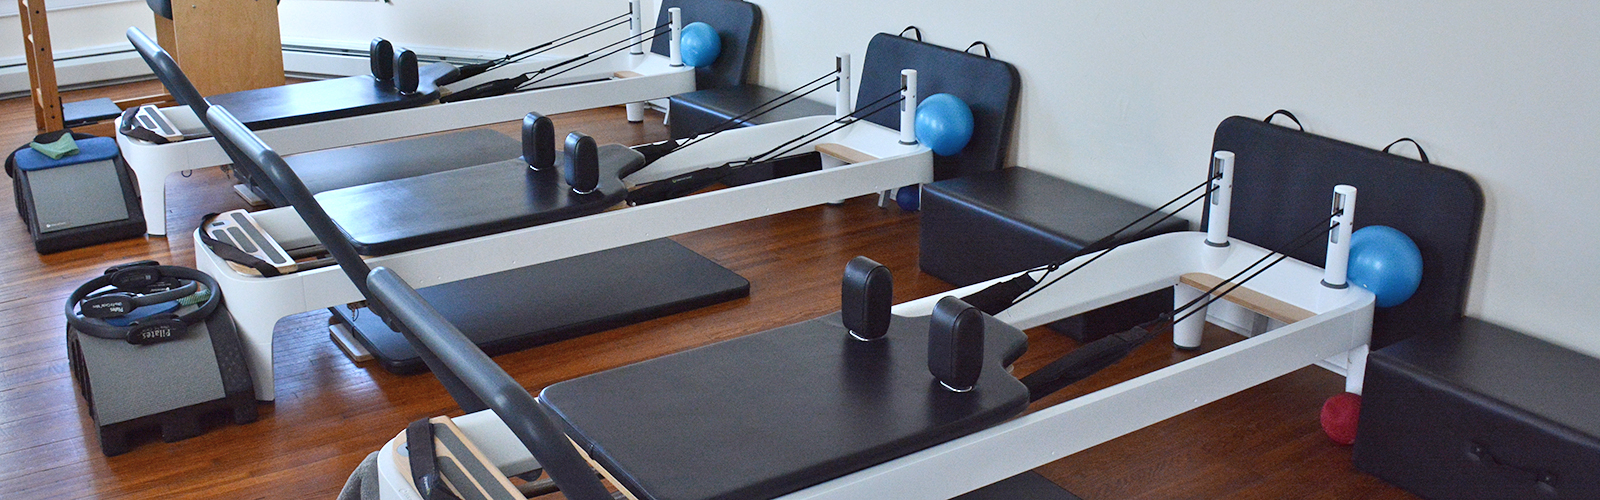 Pilates Art Studio features small class sizes and one-on-one Pilates training. <span class='image-credits'>Dan Cappellazzo</span>